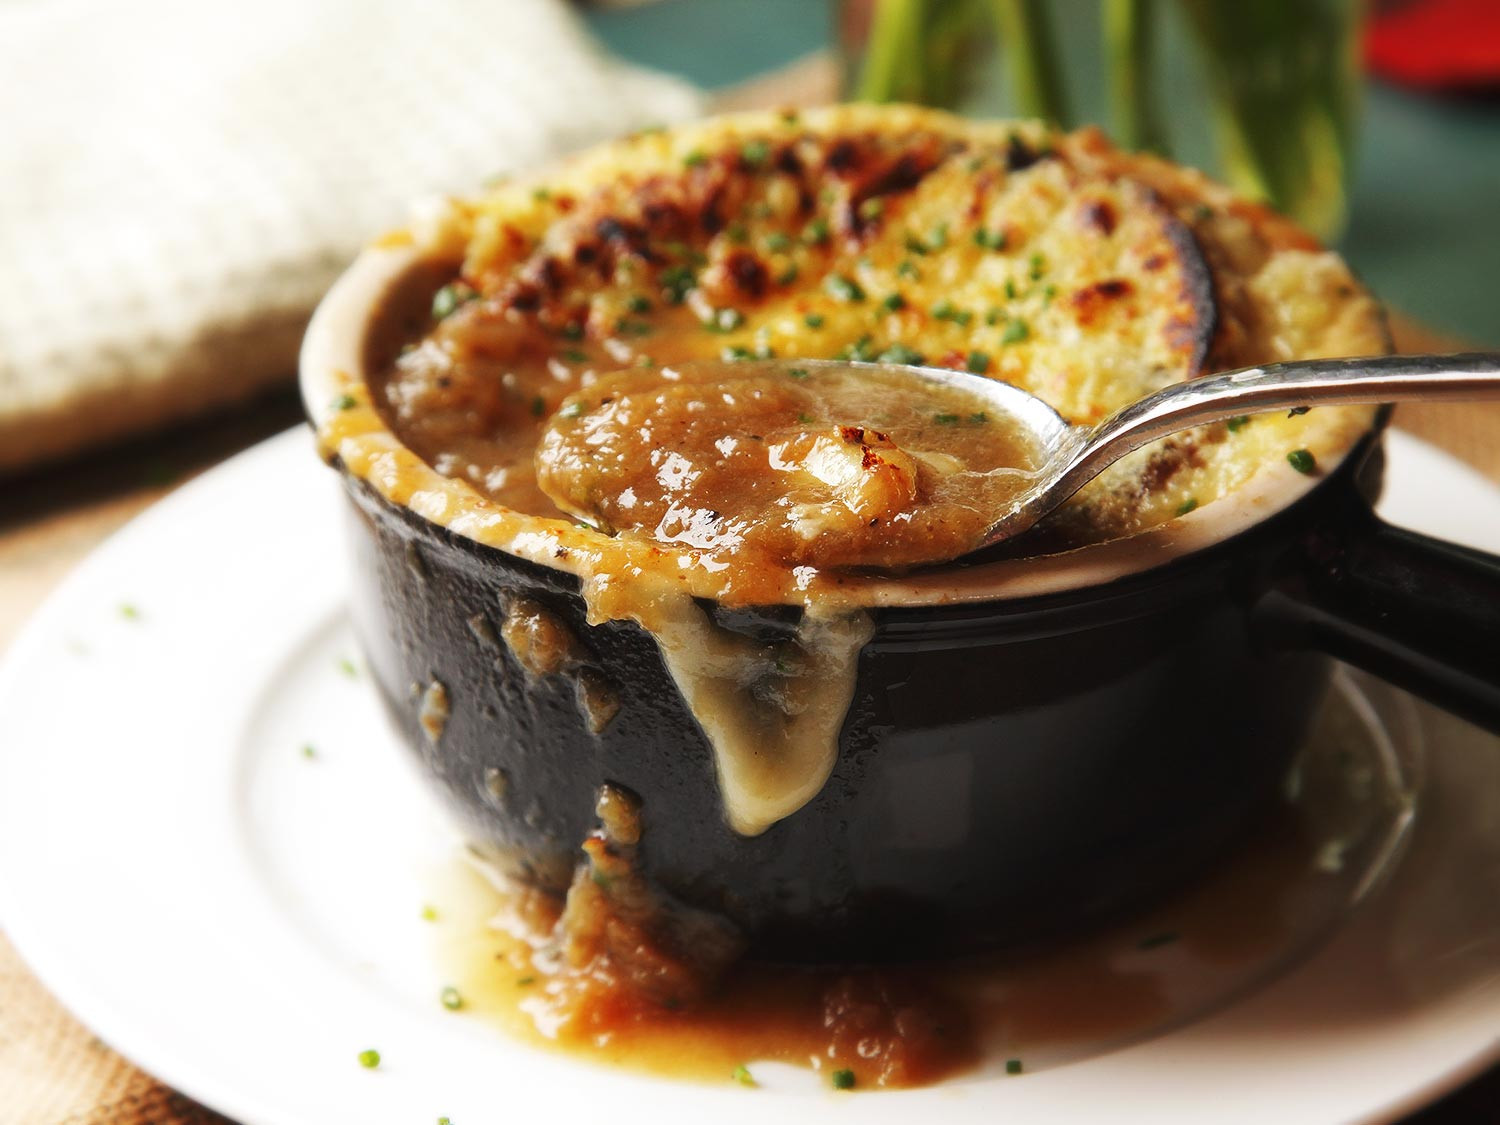 Recipe For French Onion Soup The Food Lab Use the Pressure Cooker for Quick